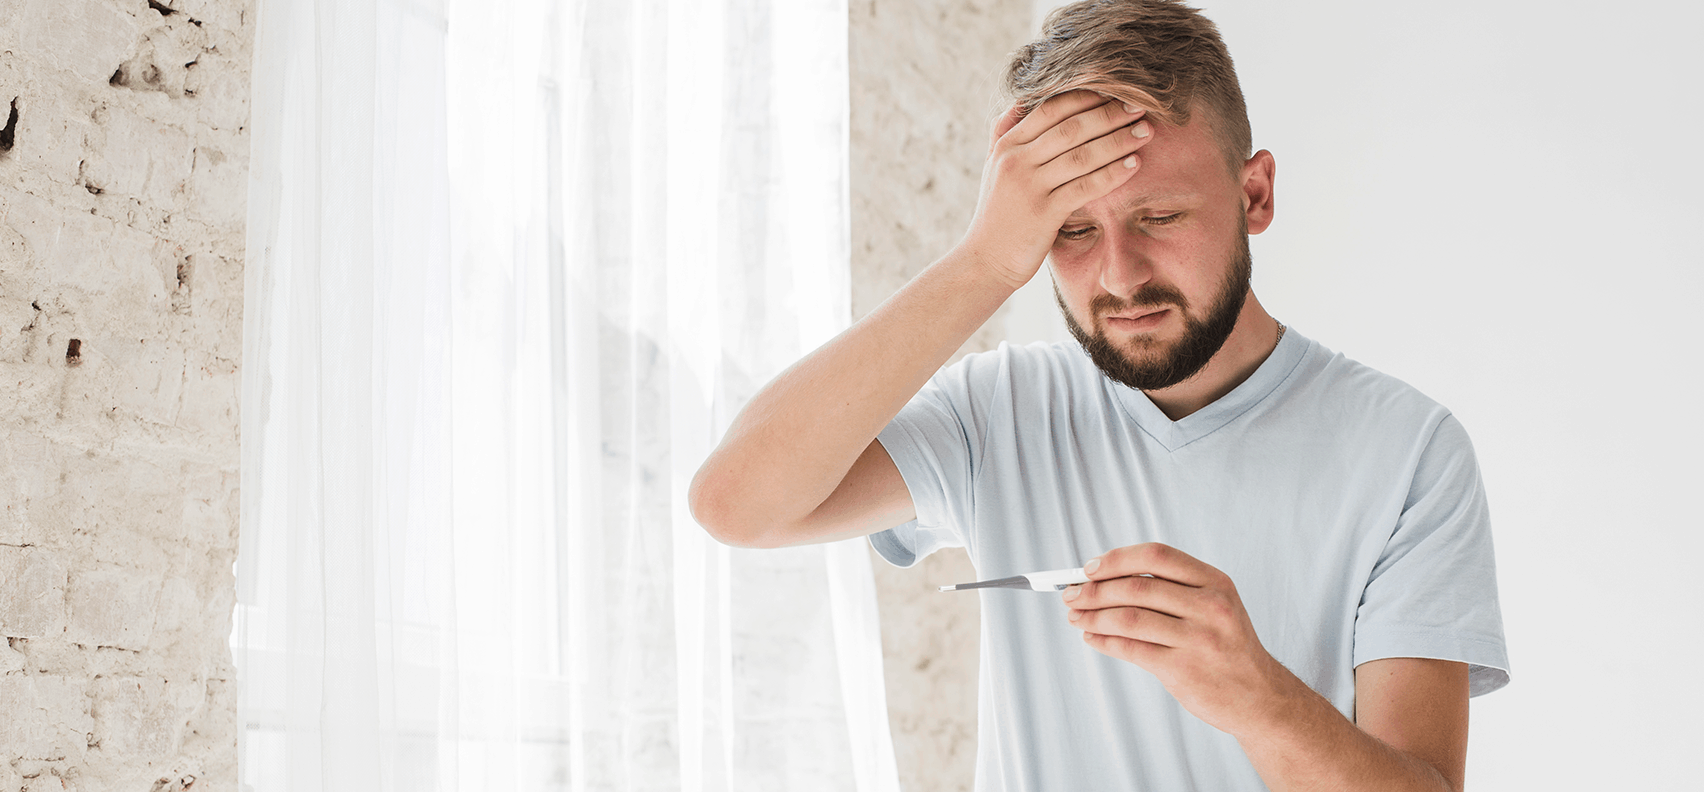 Can allergies cause a fever?